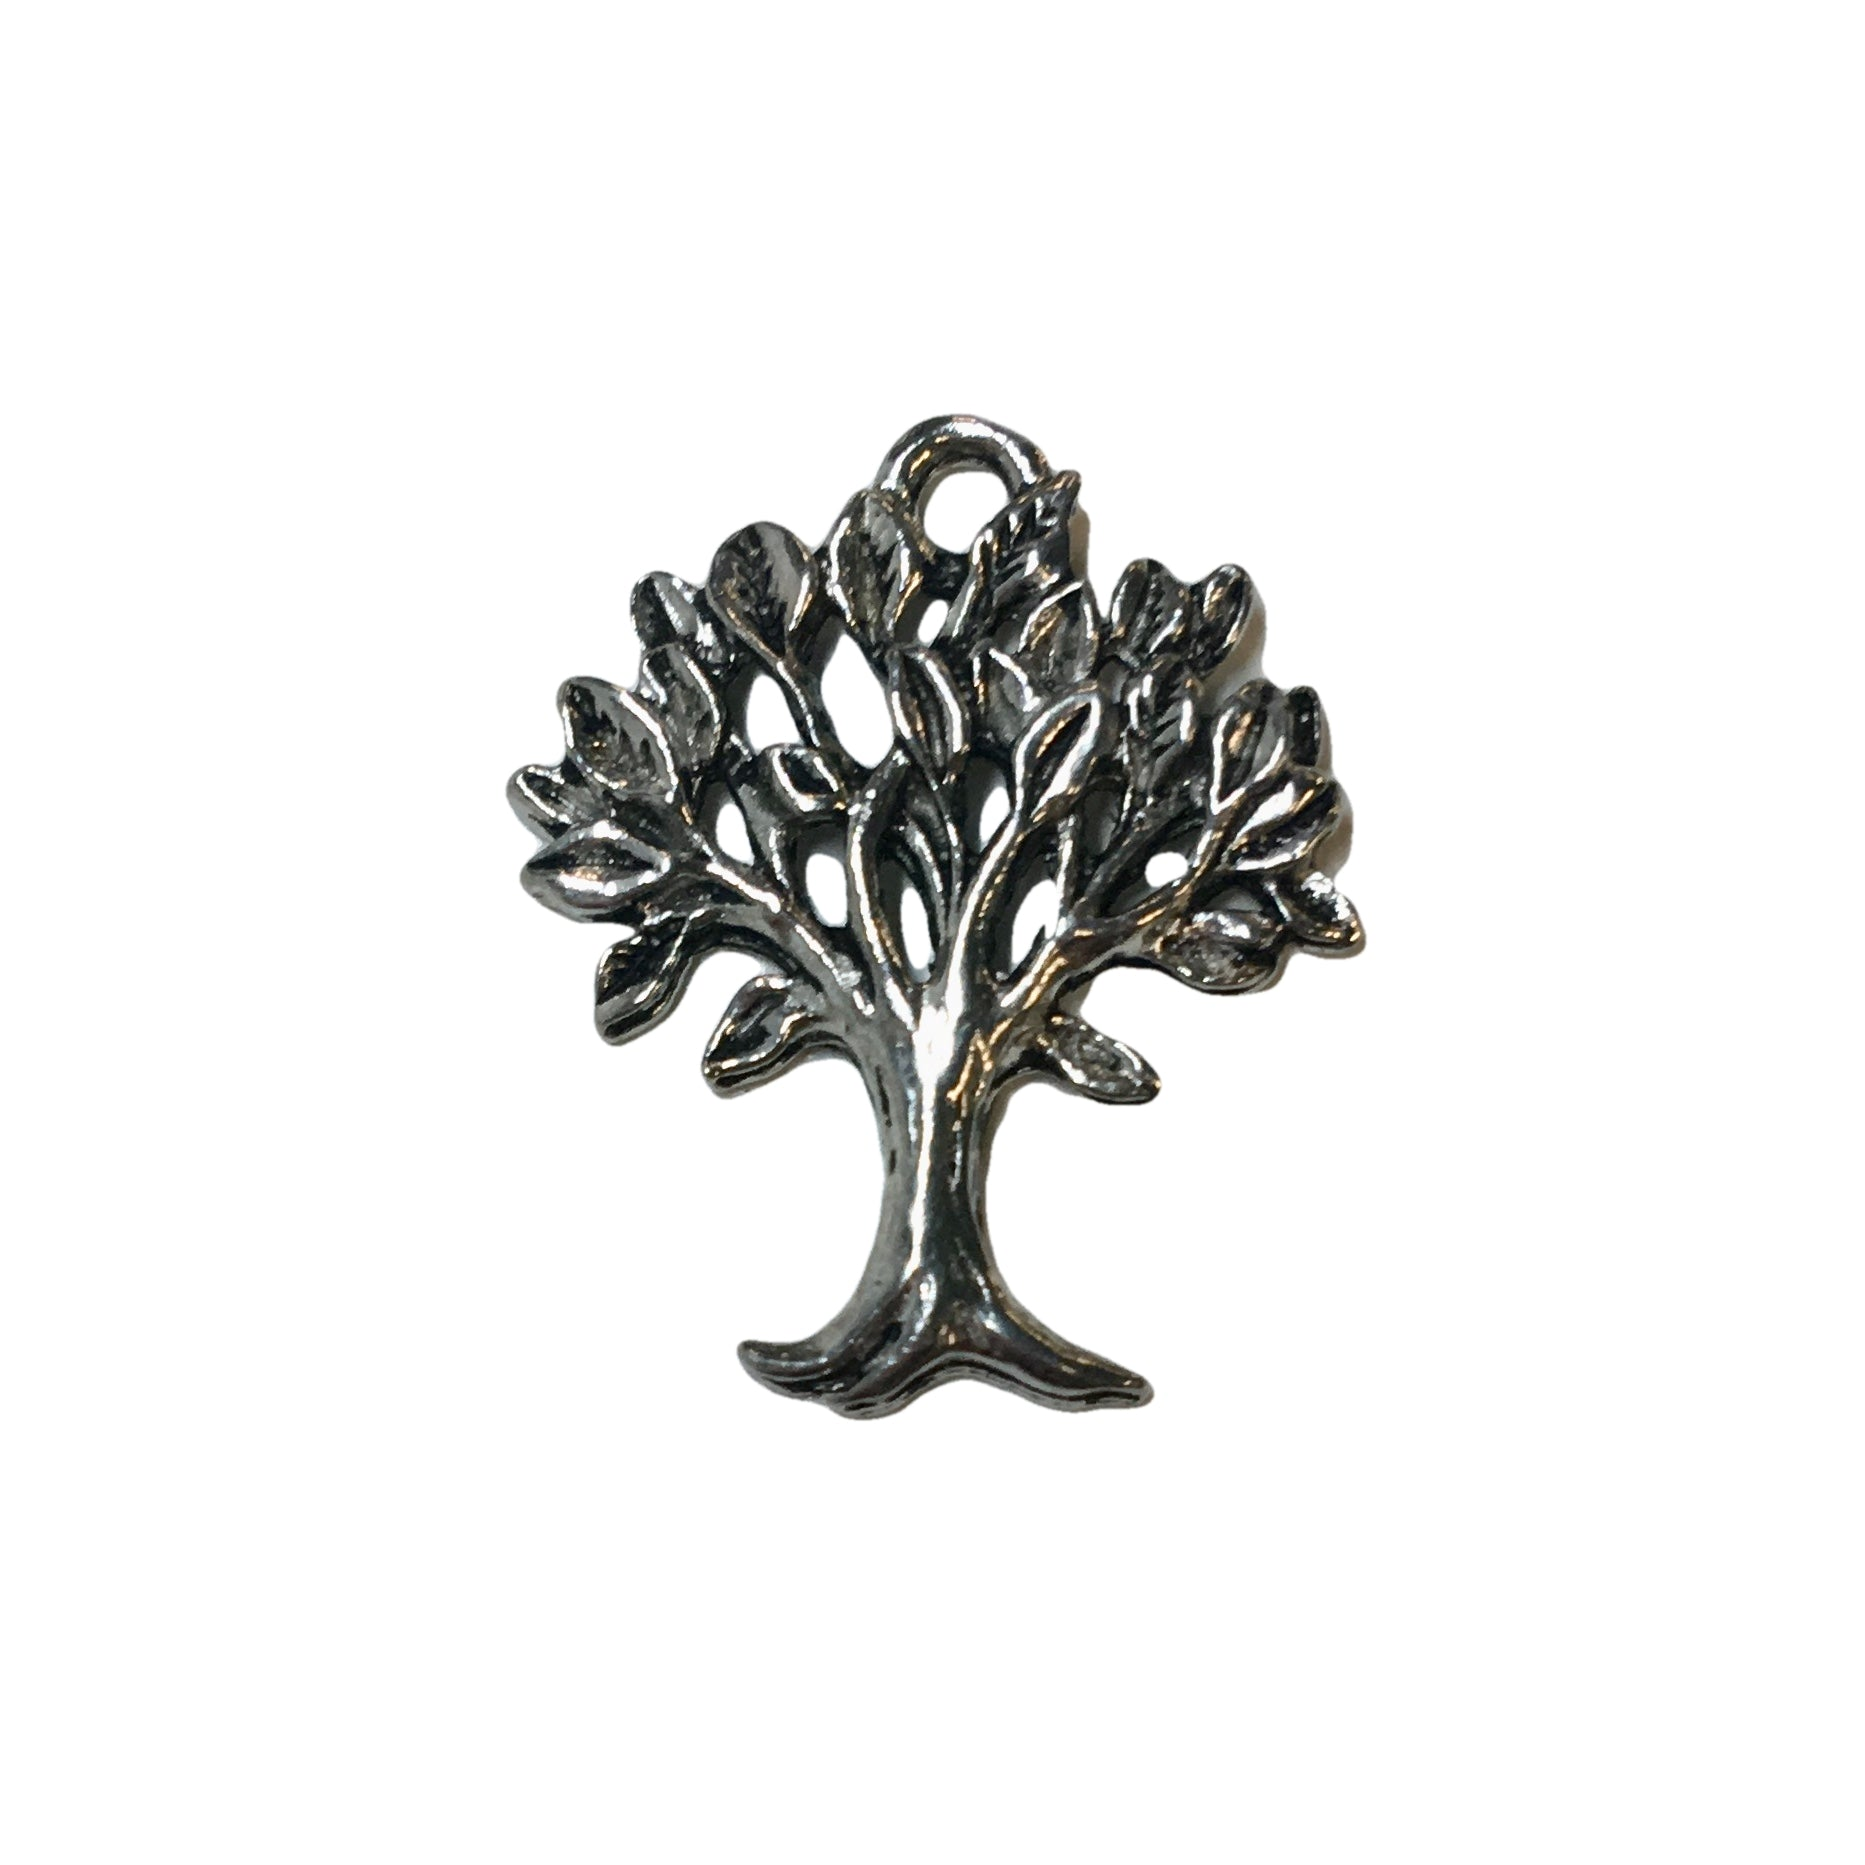 Tree of Life with Leaves Charms - Qty 5 - Lead Free Pewter Silver - American Made